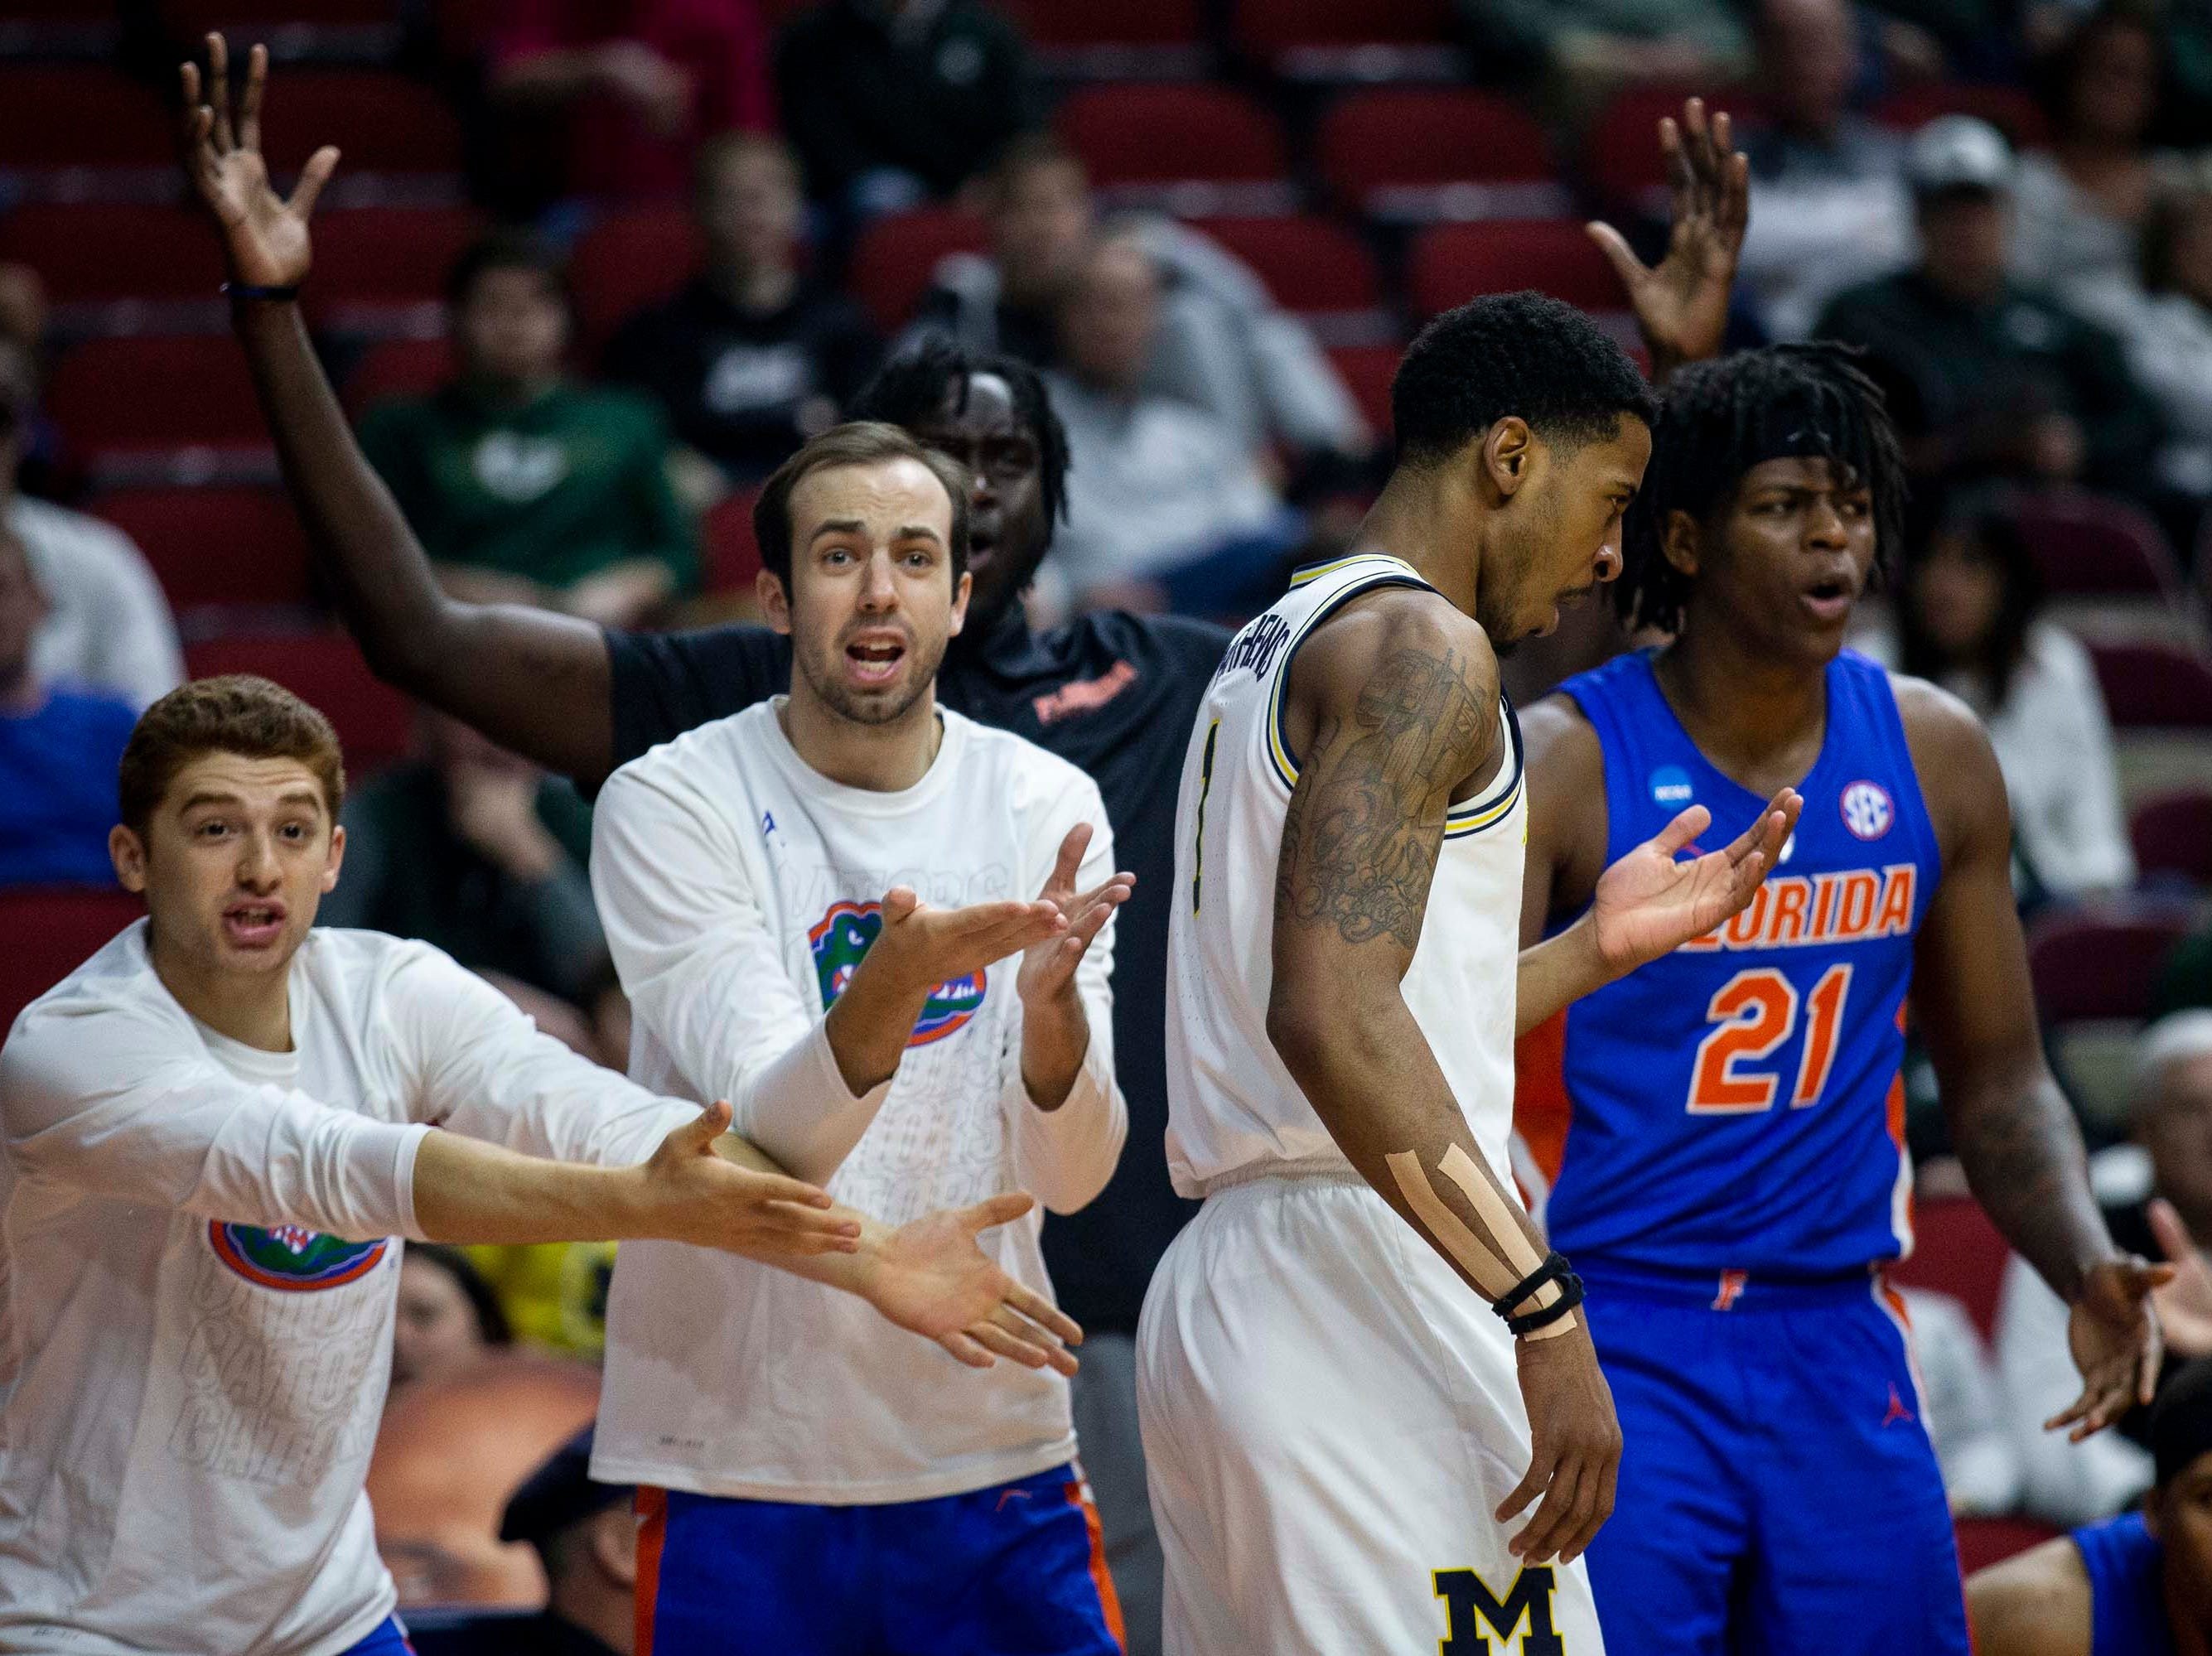 Florida players react to a call during the NCAA Tournament second-round match-up between Michigan and Florida on Saturday, March 23, 2019, in Wells Fargo Arena in Des Moines, Iowa.